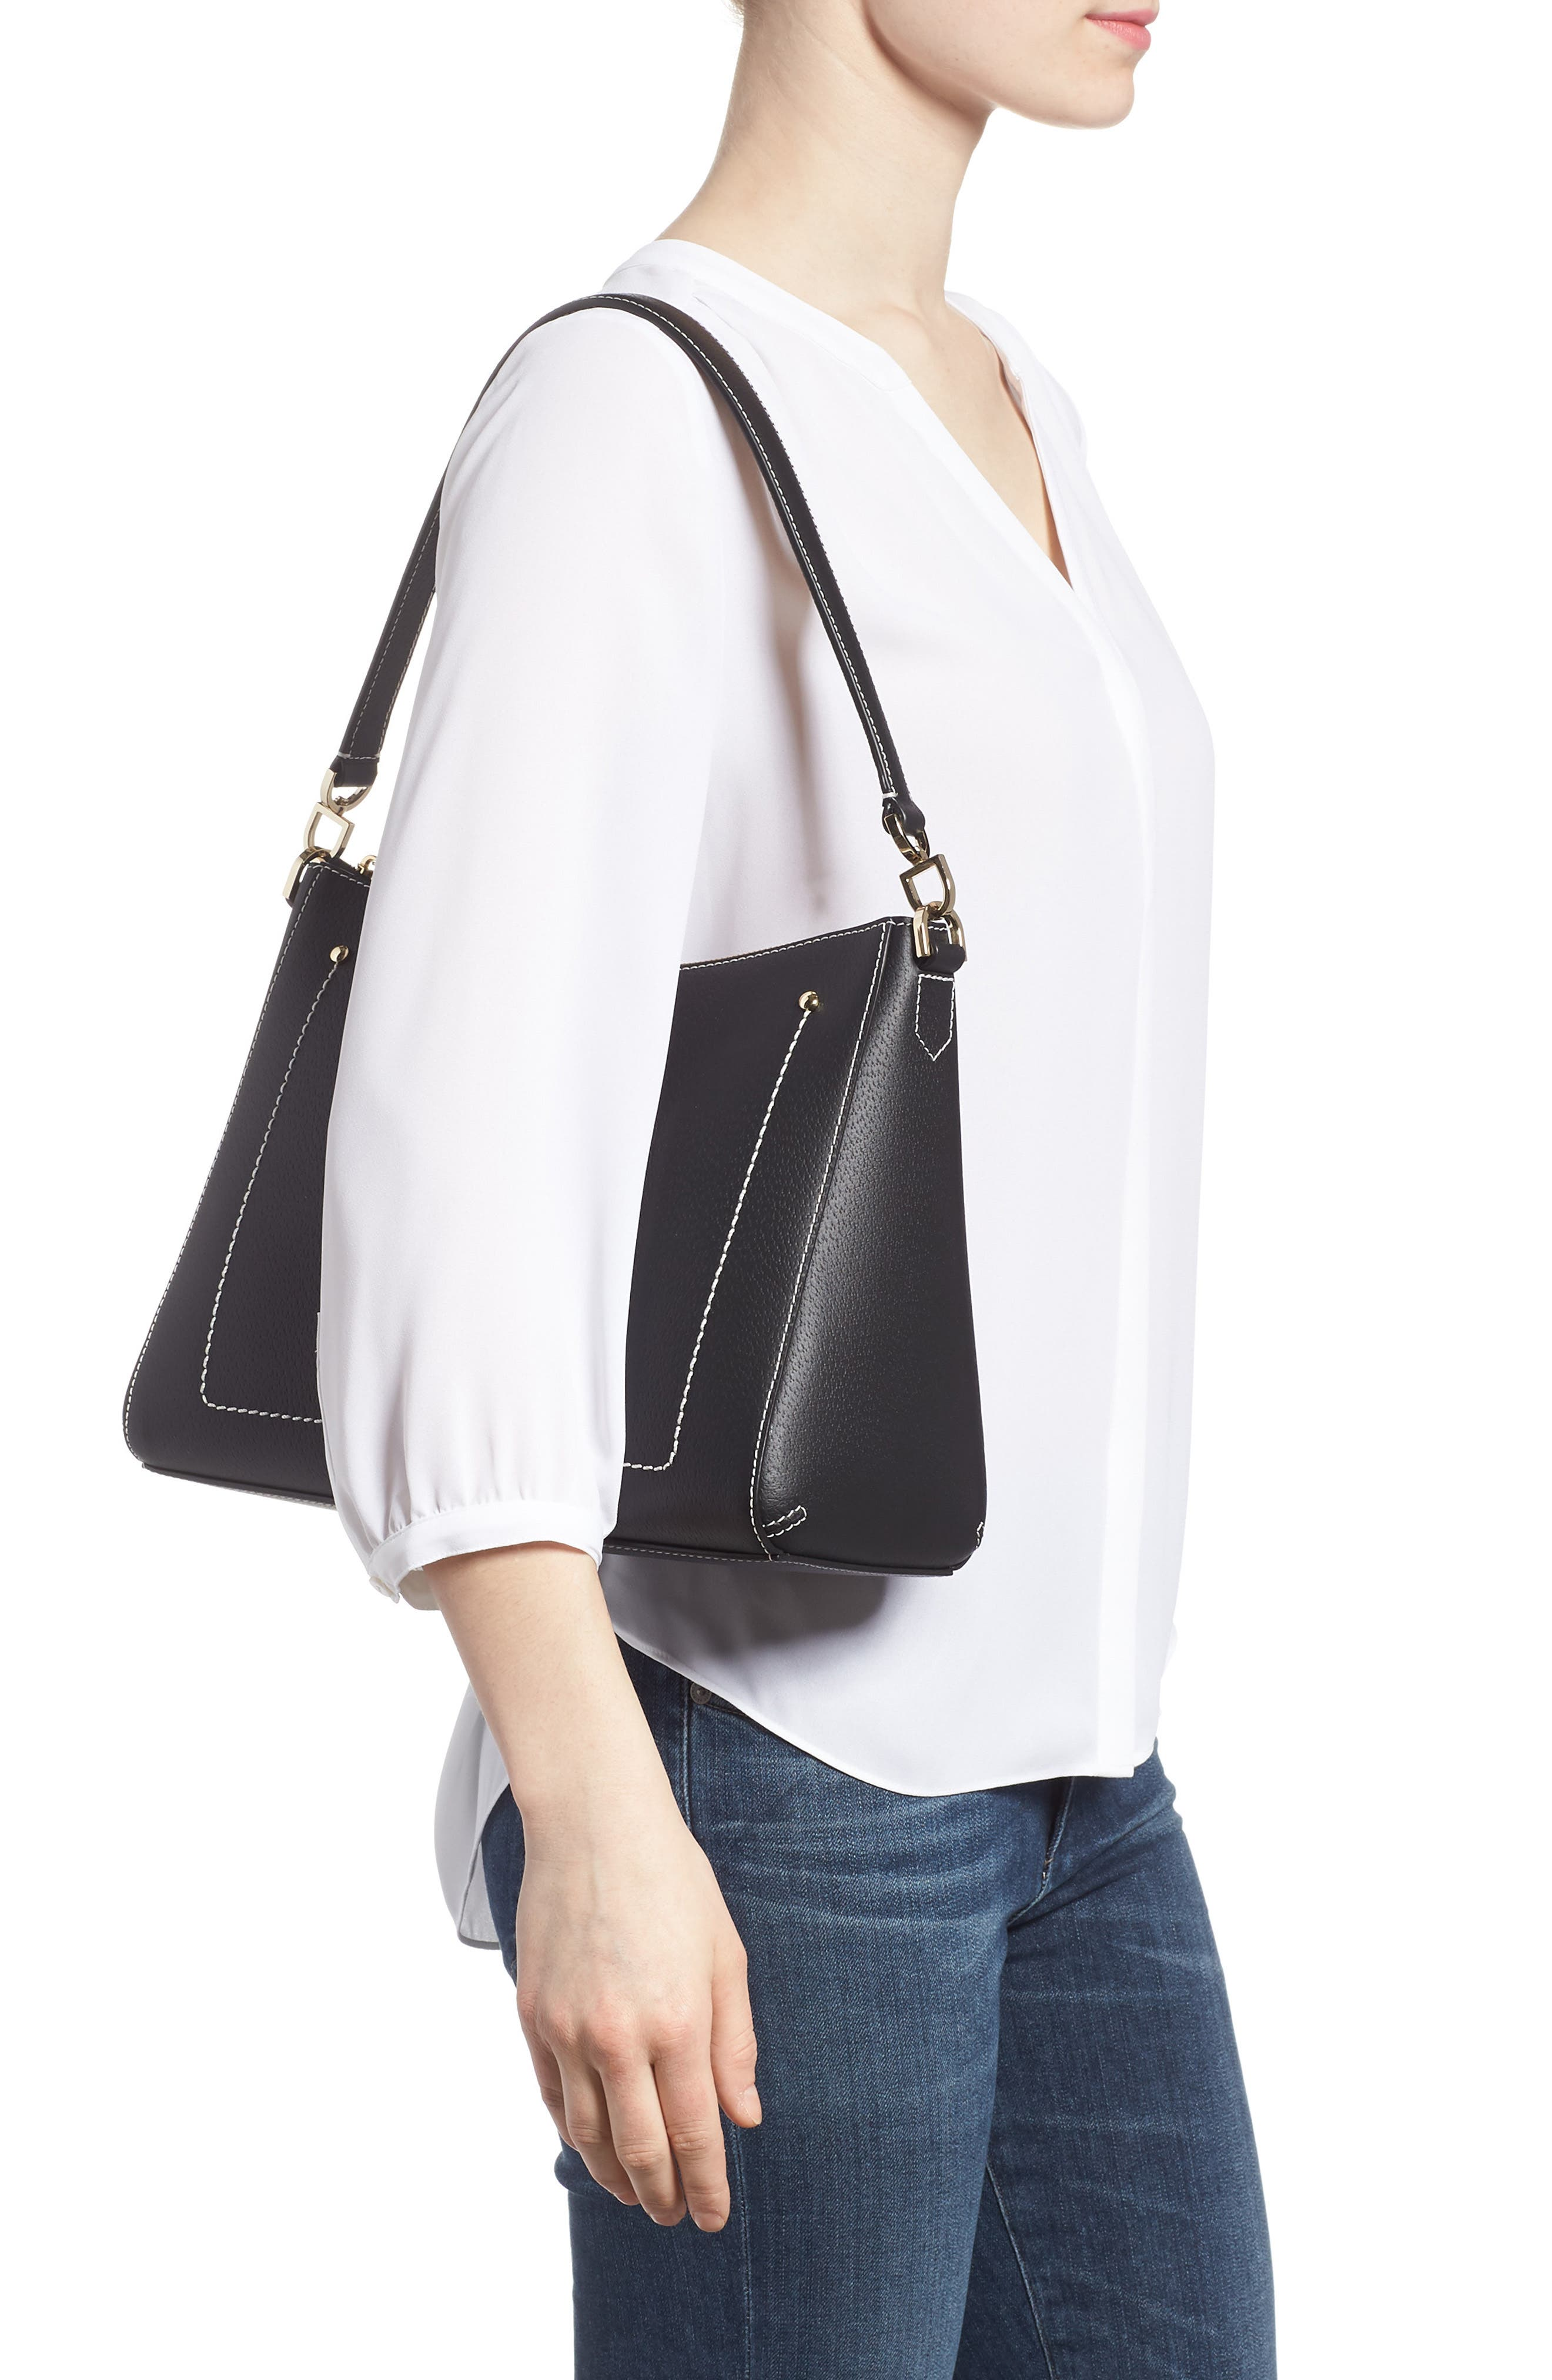 thompson street - marti leather shoulder/crossbody bag,                             Alternate thumbnail 2, color,                             001